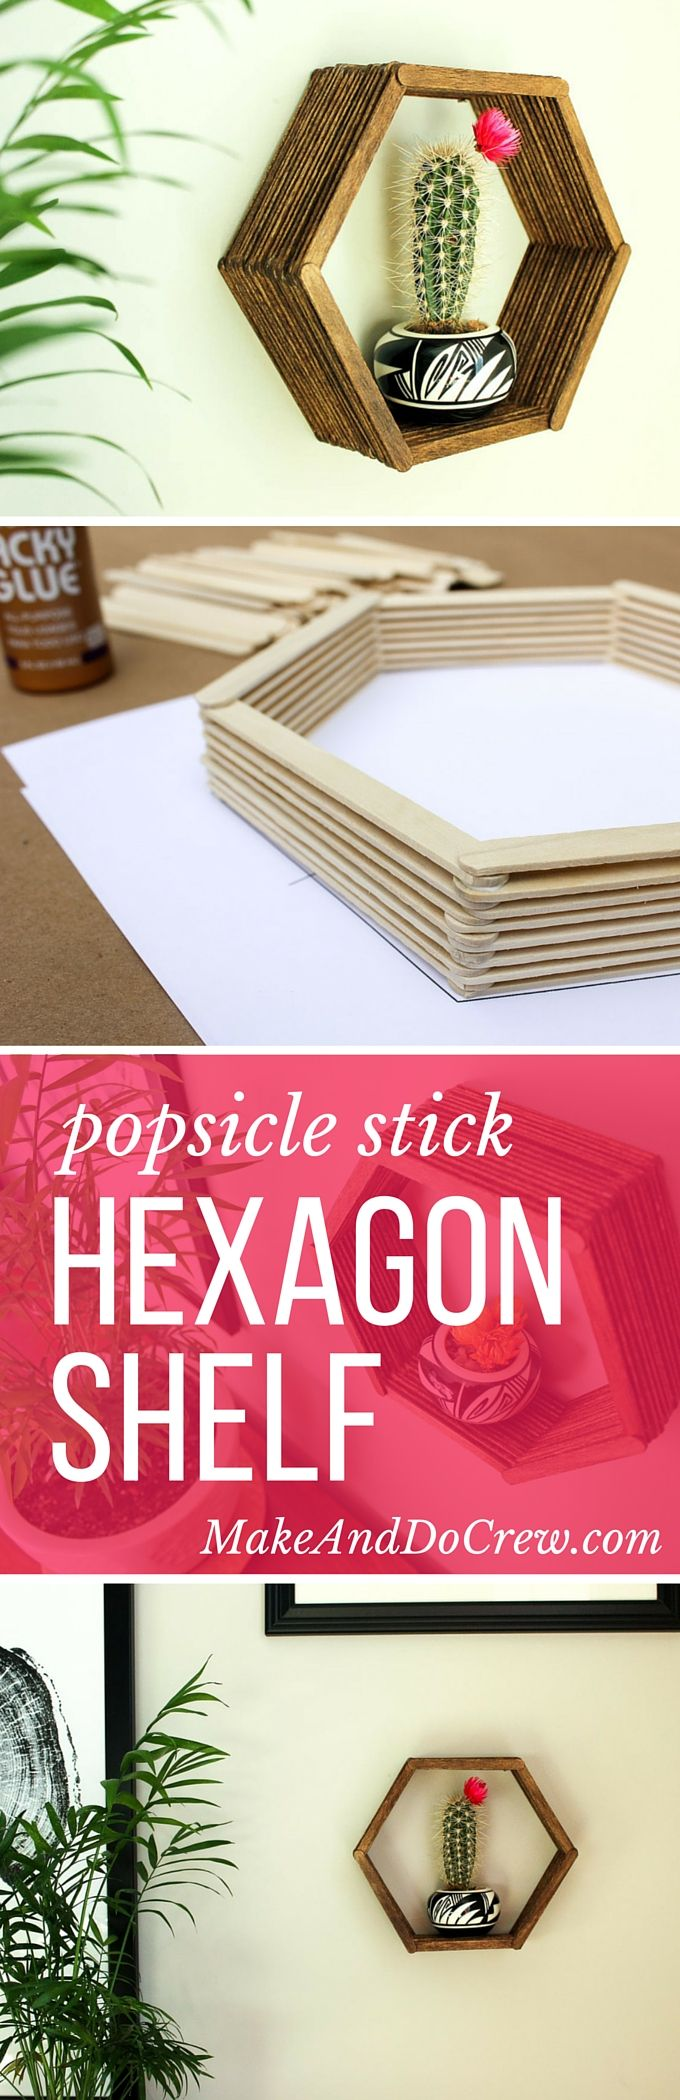 Popsicle Stick Hexagon Shelf Easy DIY